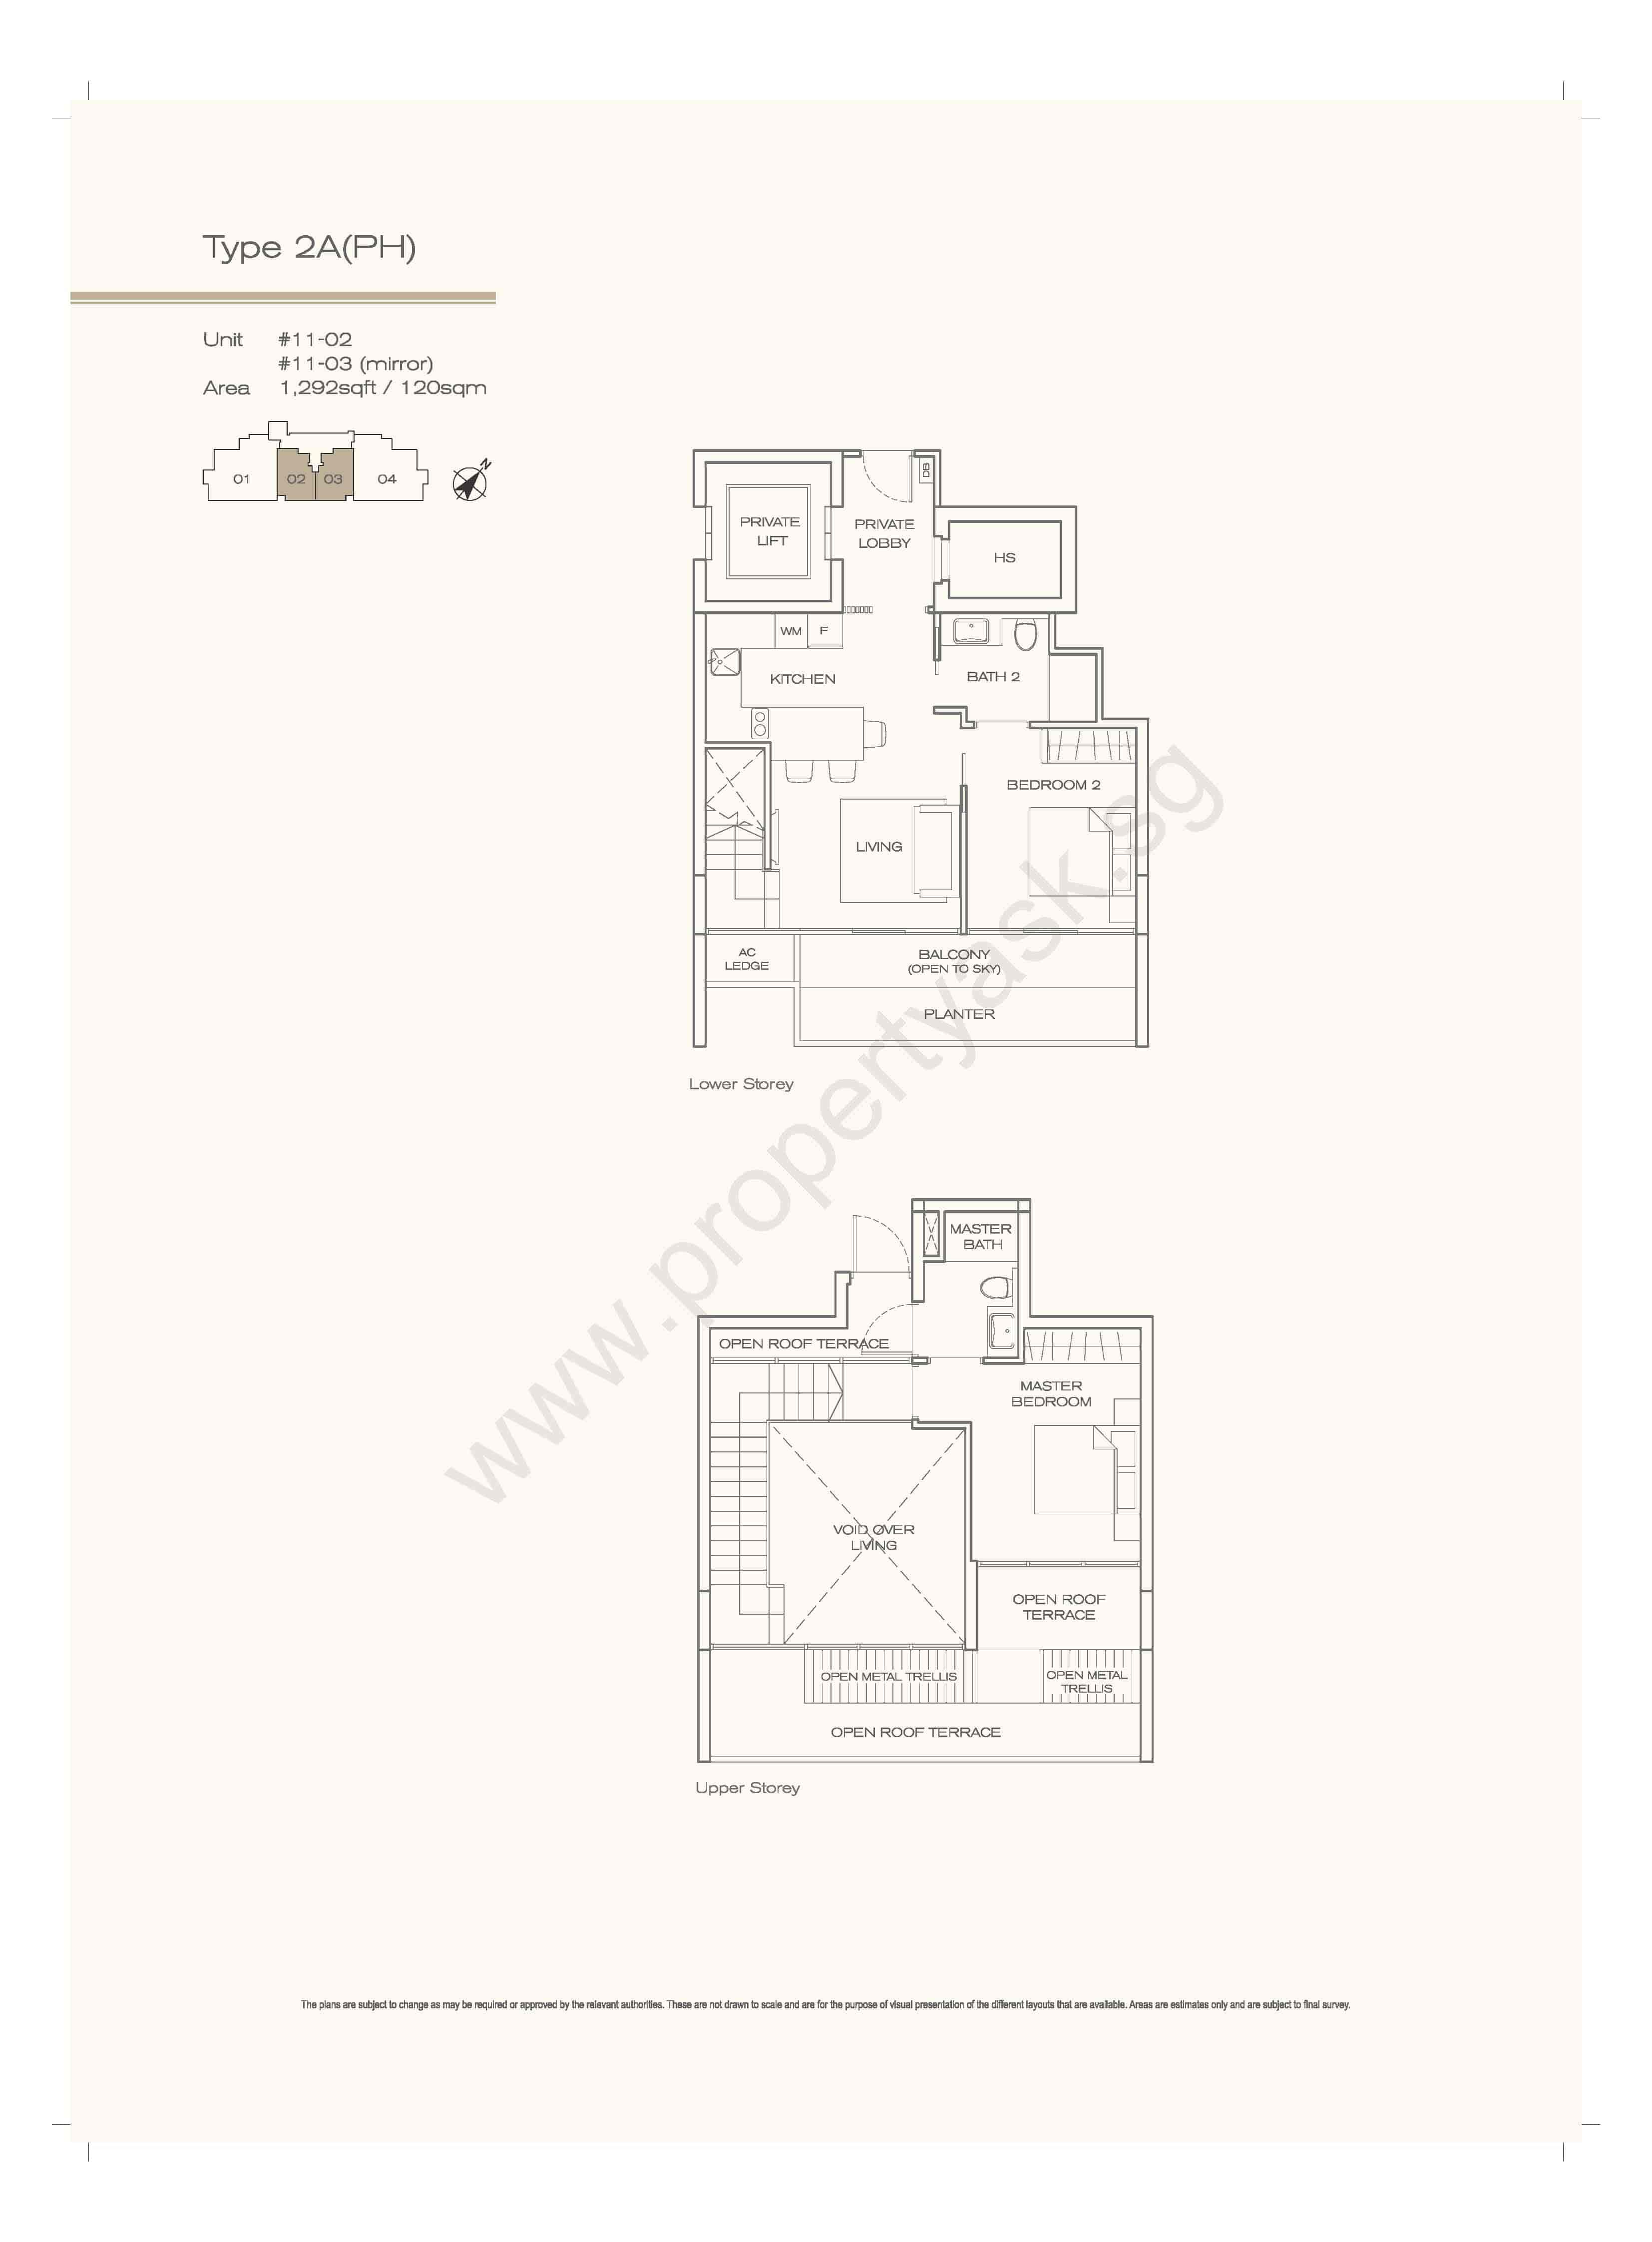 Type 2A - Penthouse 2 Bedrooms